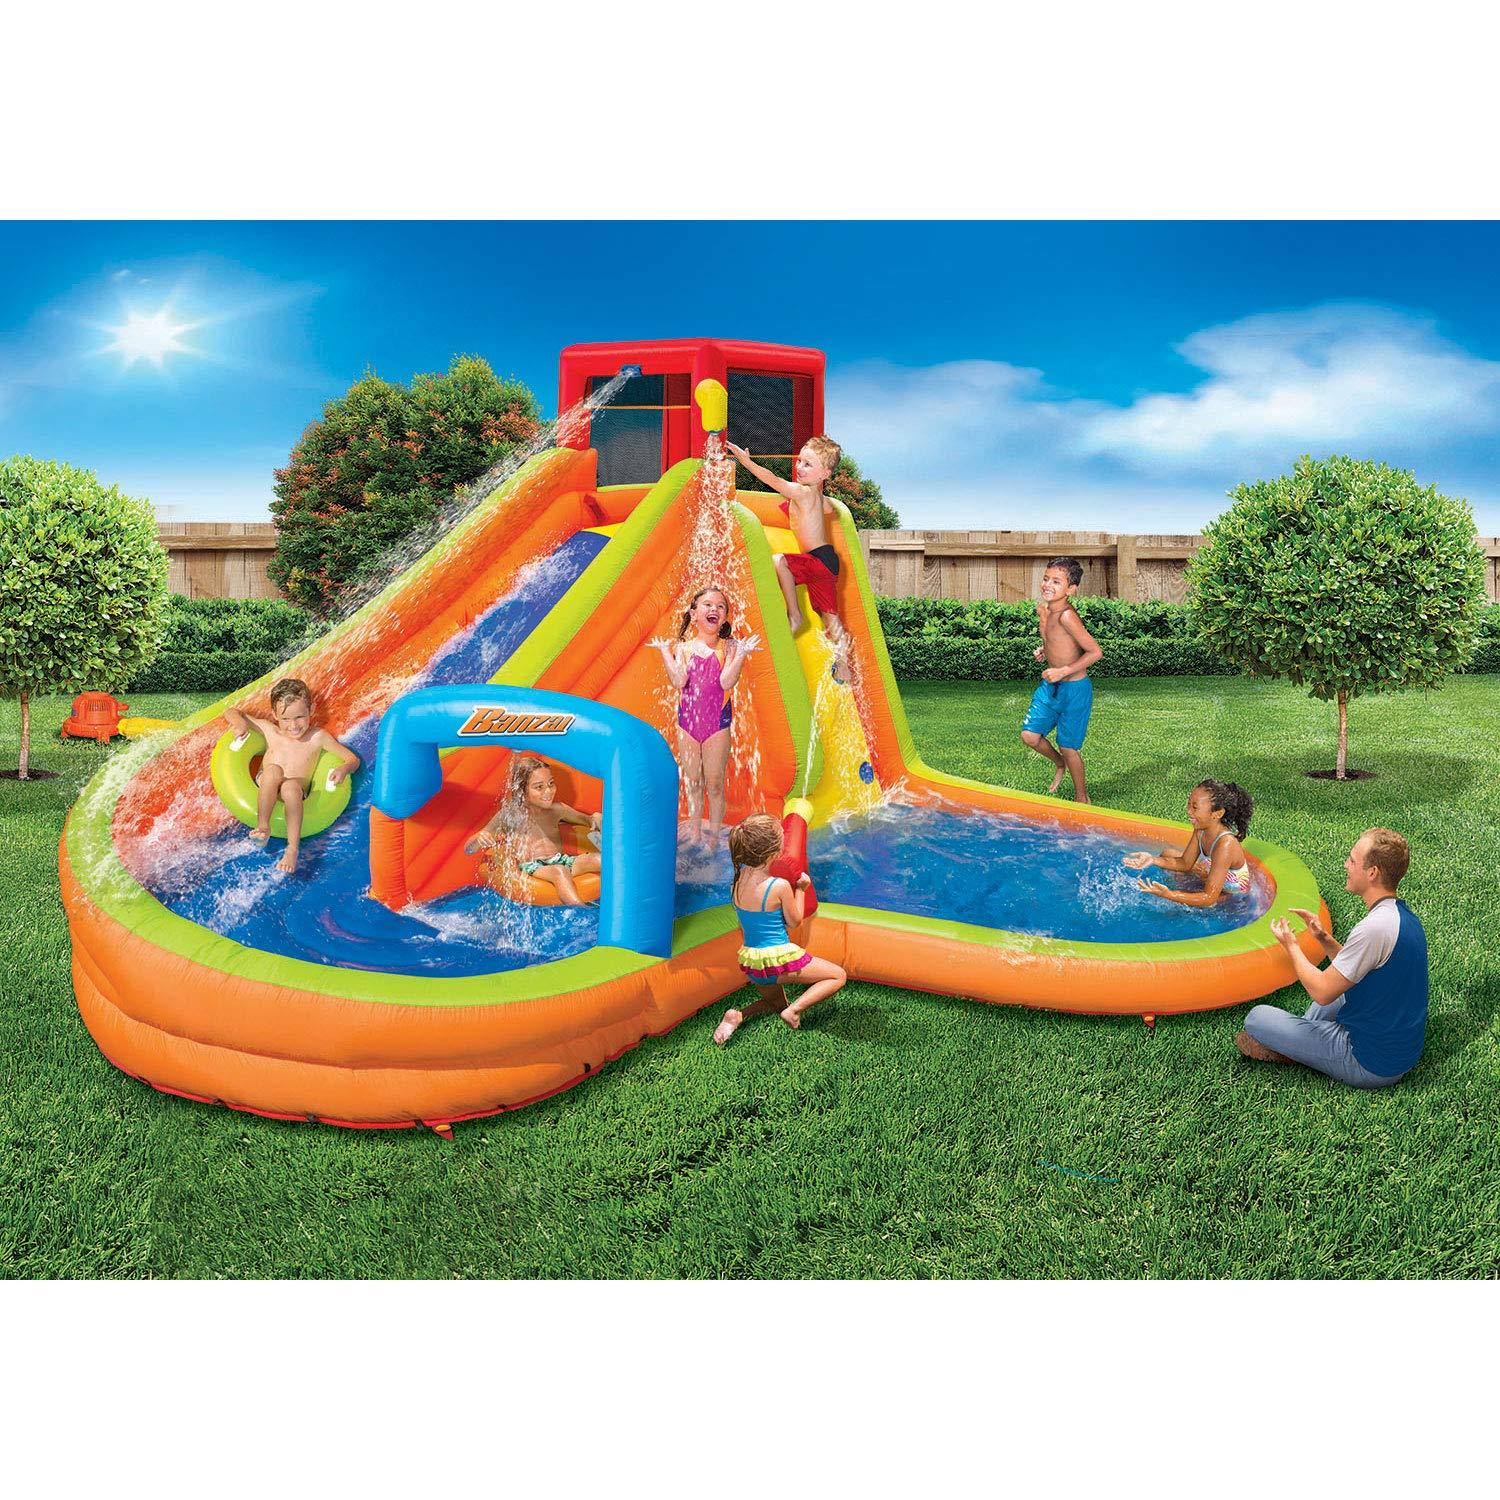 BANZAI Lazy River Inflatable Outdoor Adventure Water Park Slide and Splash Pool by BANZAI (Image #2)